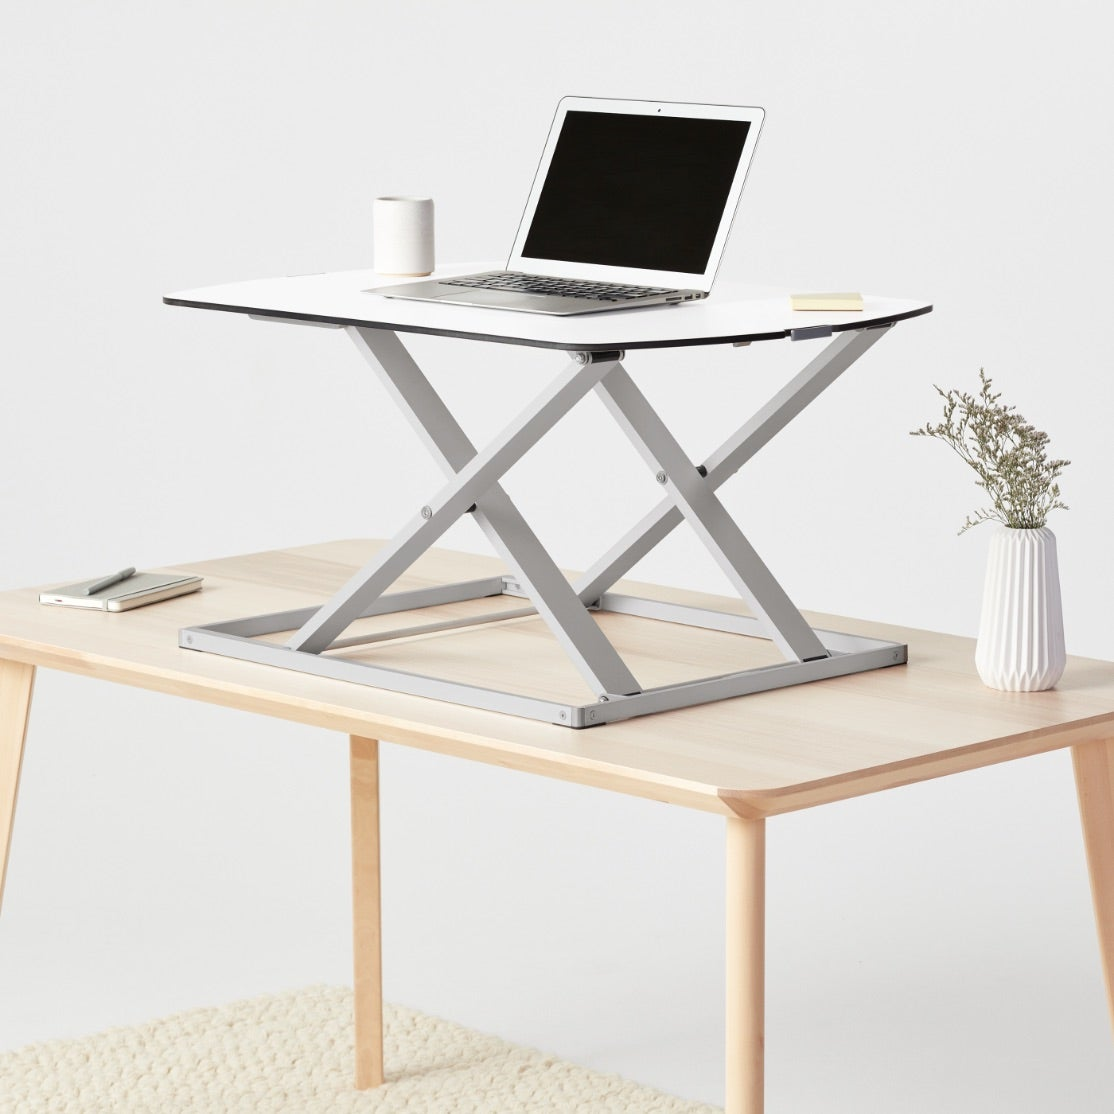 Fully Cora standing desk converter in white